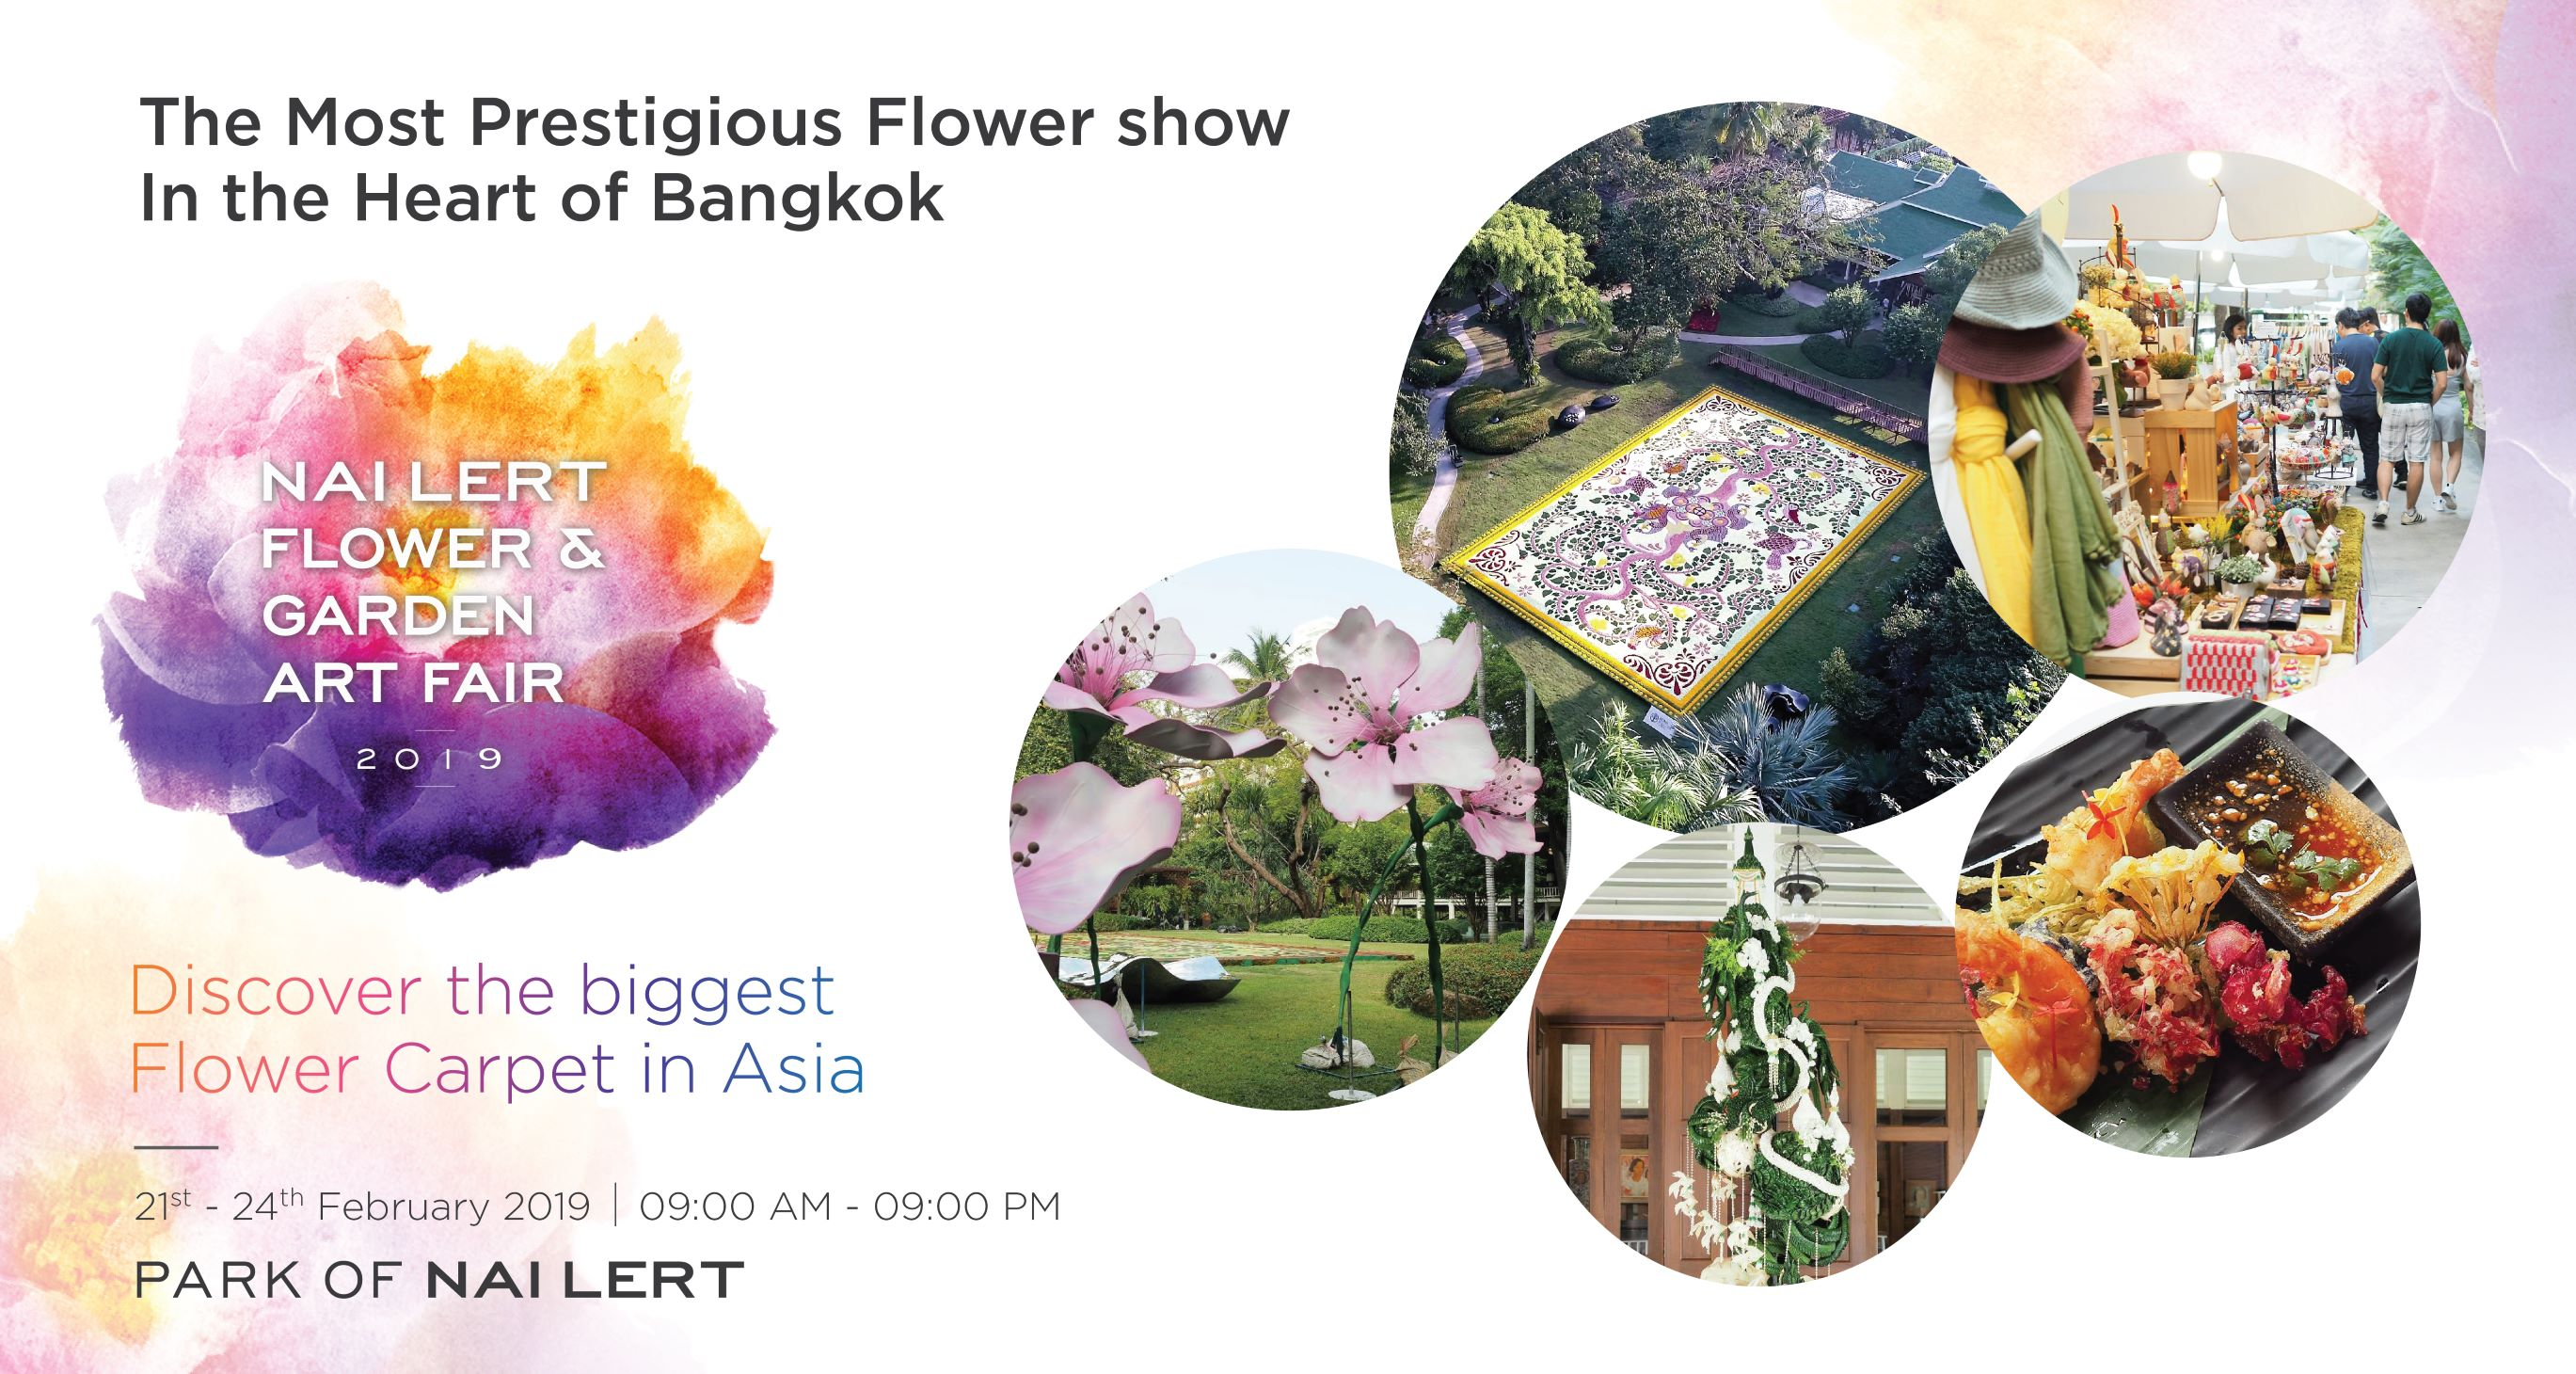 Nai Lert Flower & Garden Art Fair